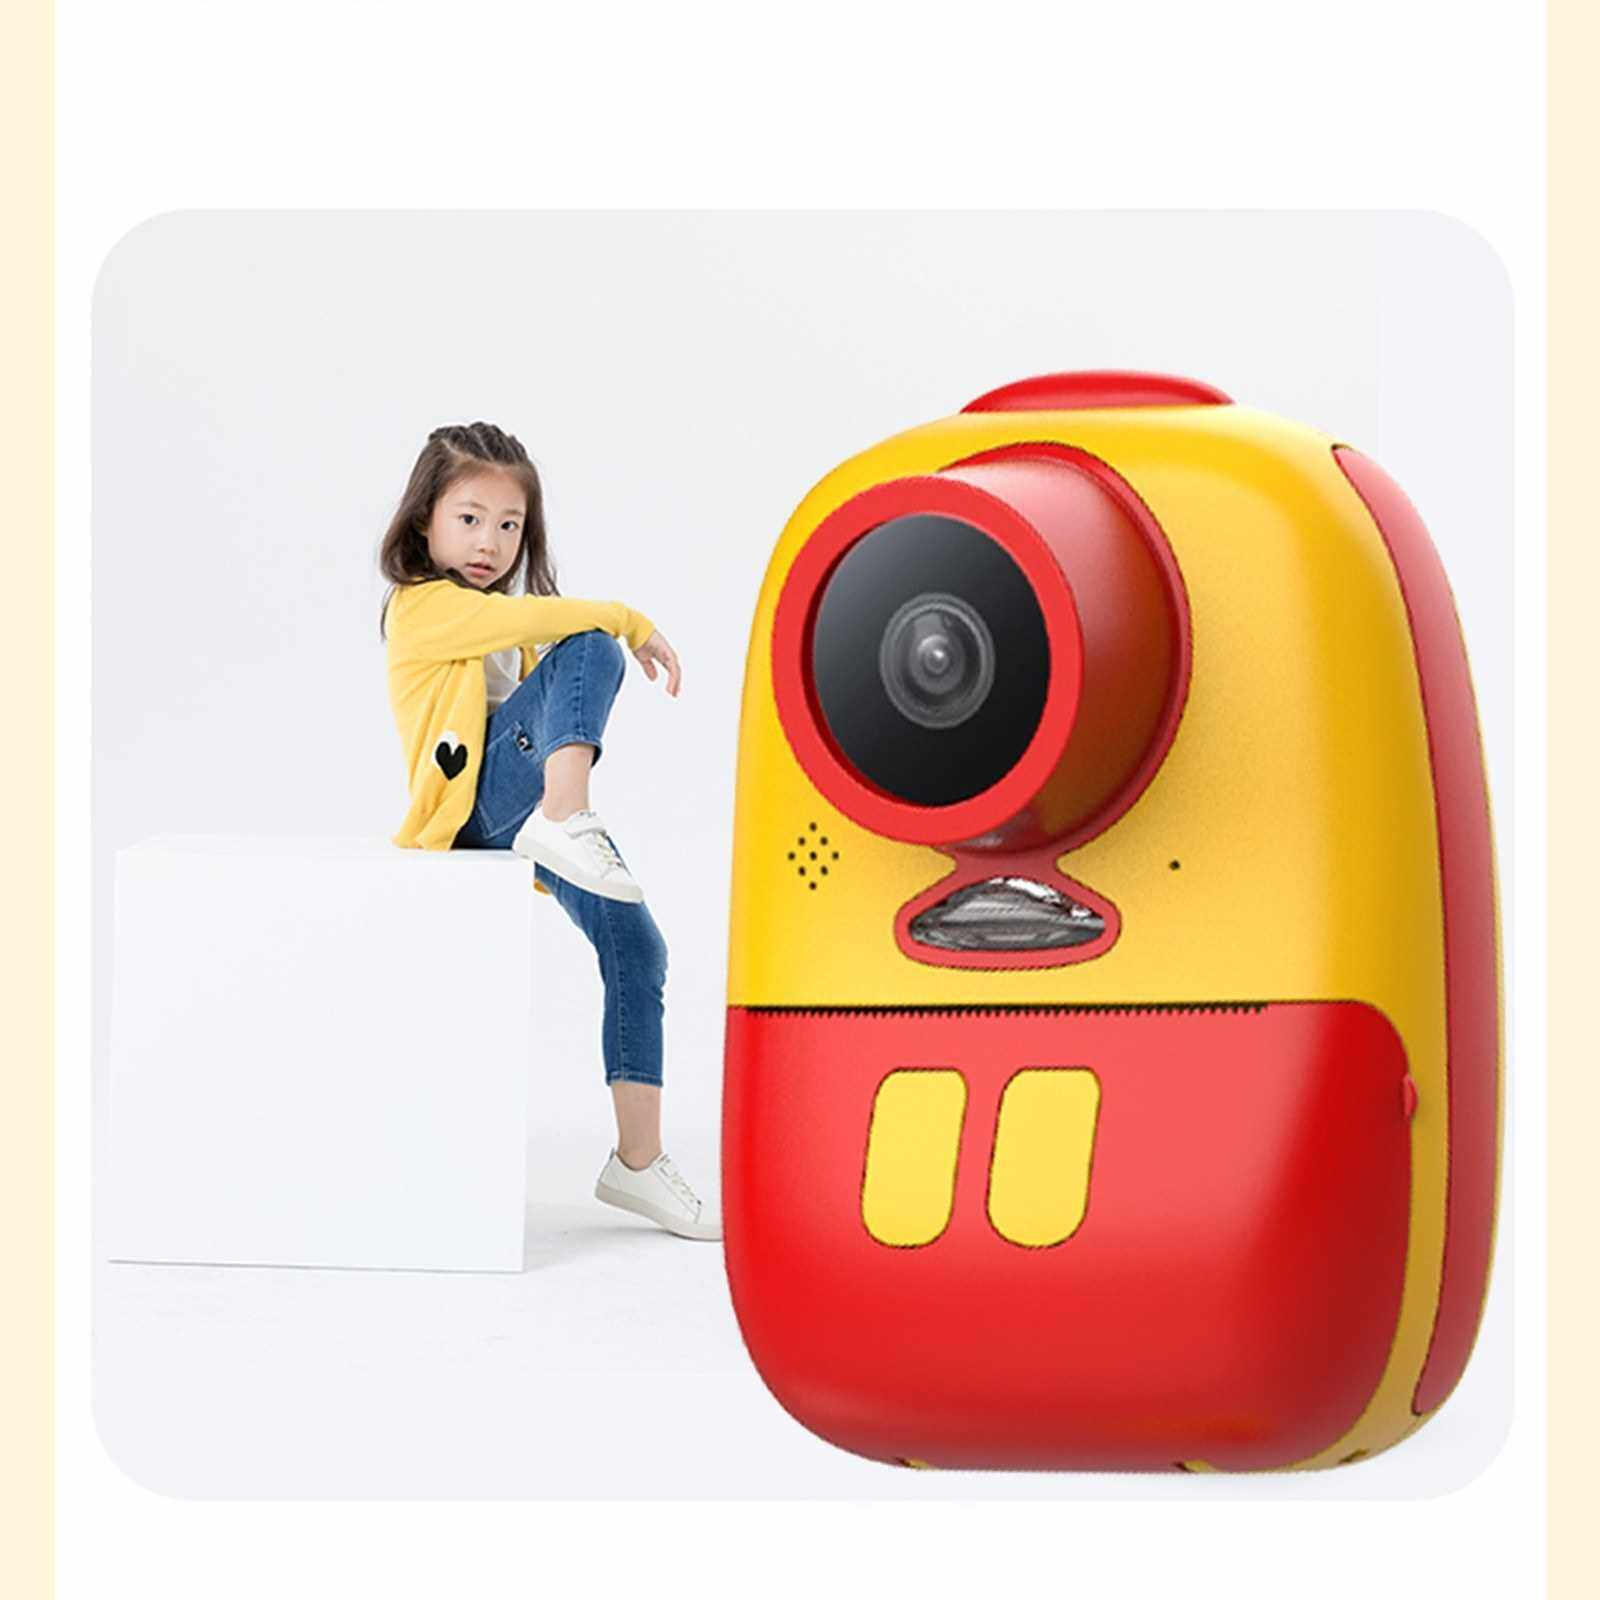 Kids Instant Digital Camera Double Lens Toys Instant Print Camera Support Selfies Video with Wider Strap Cartoon Bag Photo Thermal Paper Portable Photo Printer for Girl Boy (Pink)